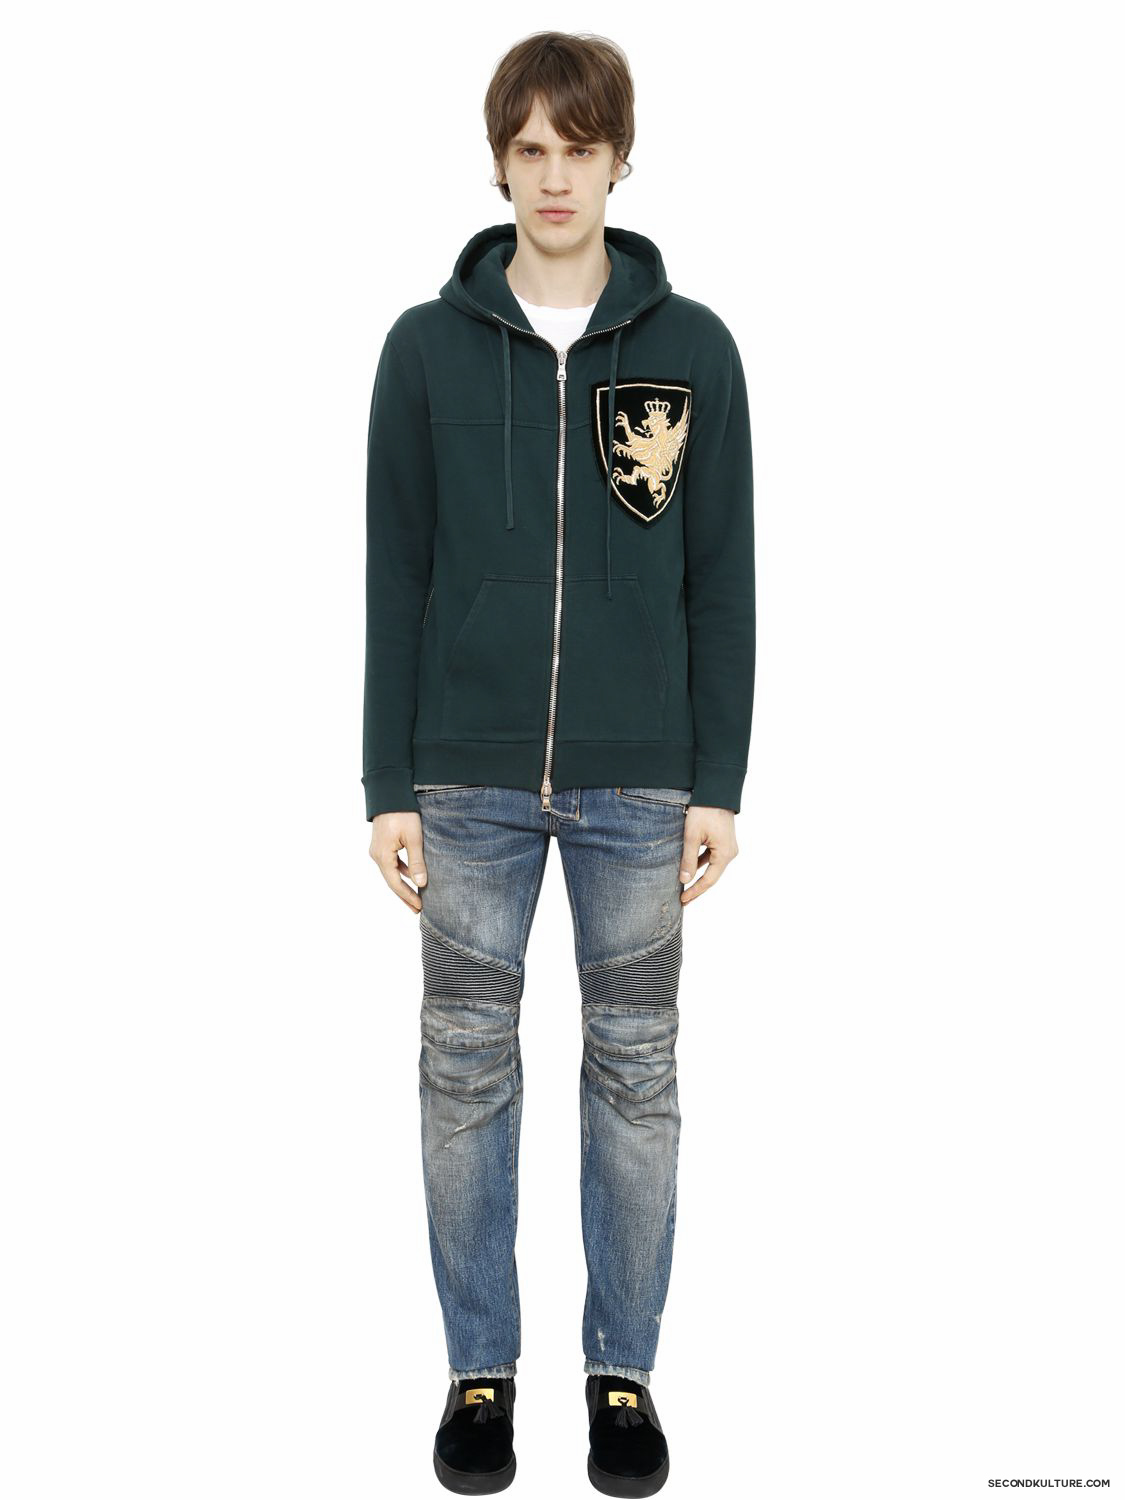 Balmain-Green-Crest-Embroidered-Hoodie-Fall-Winter-2015-2